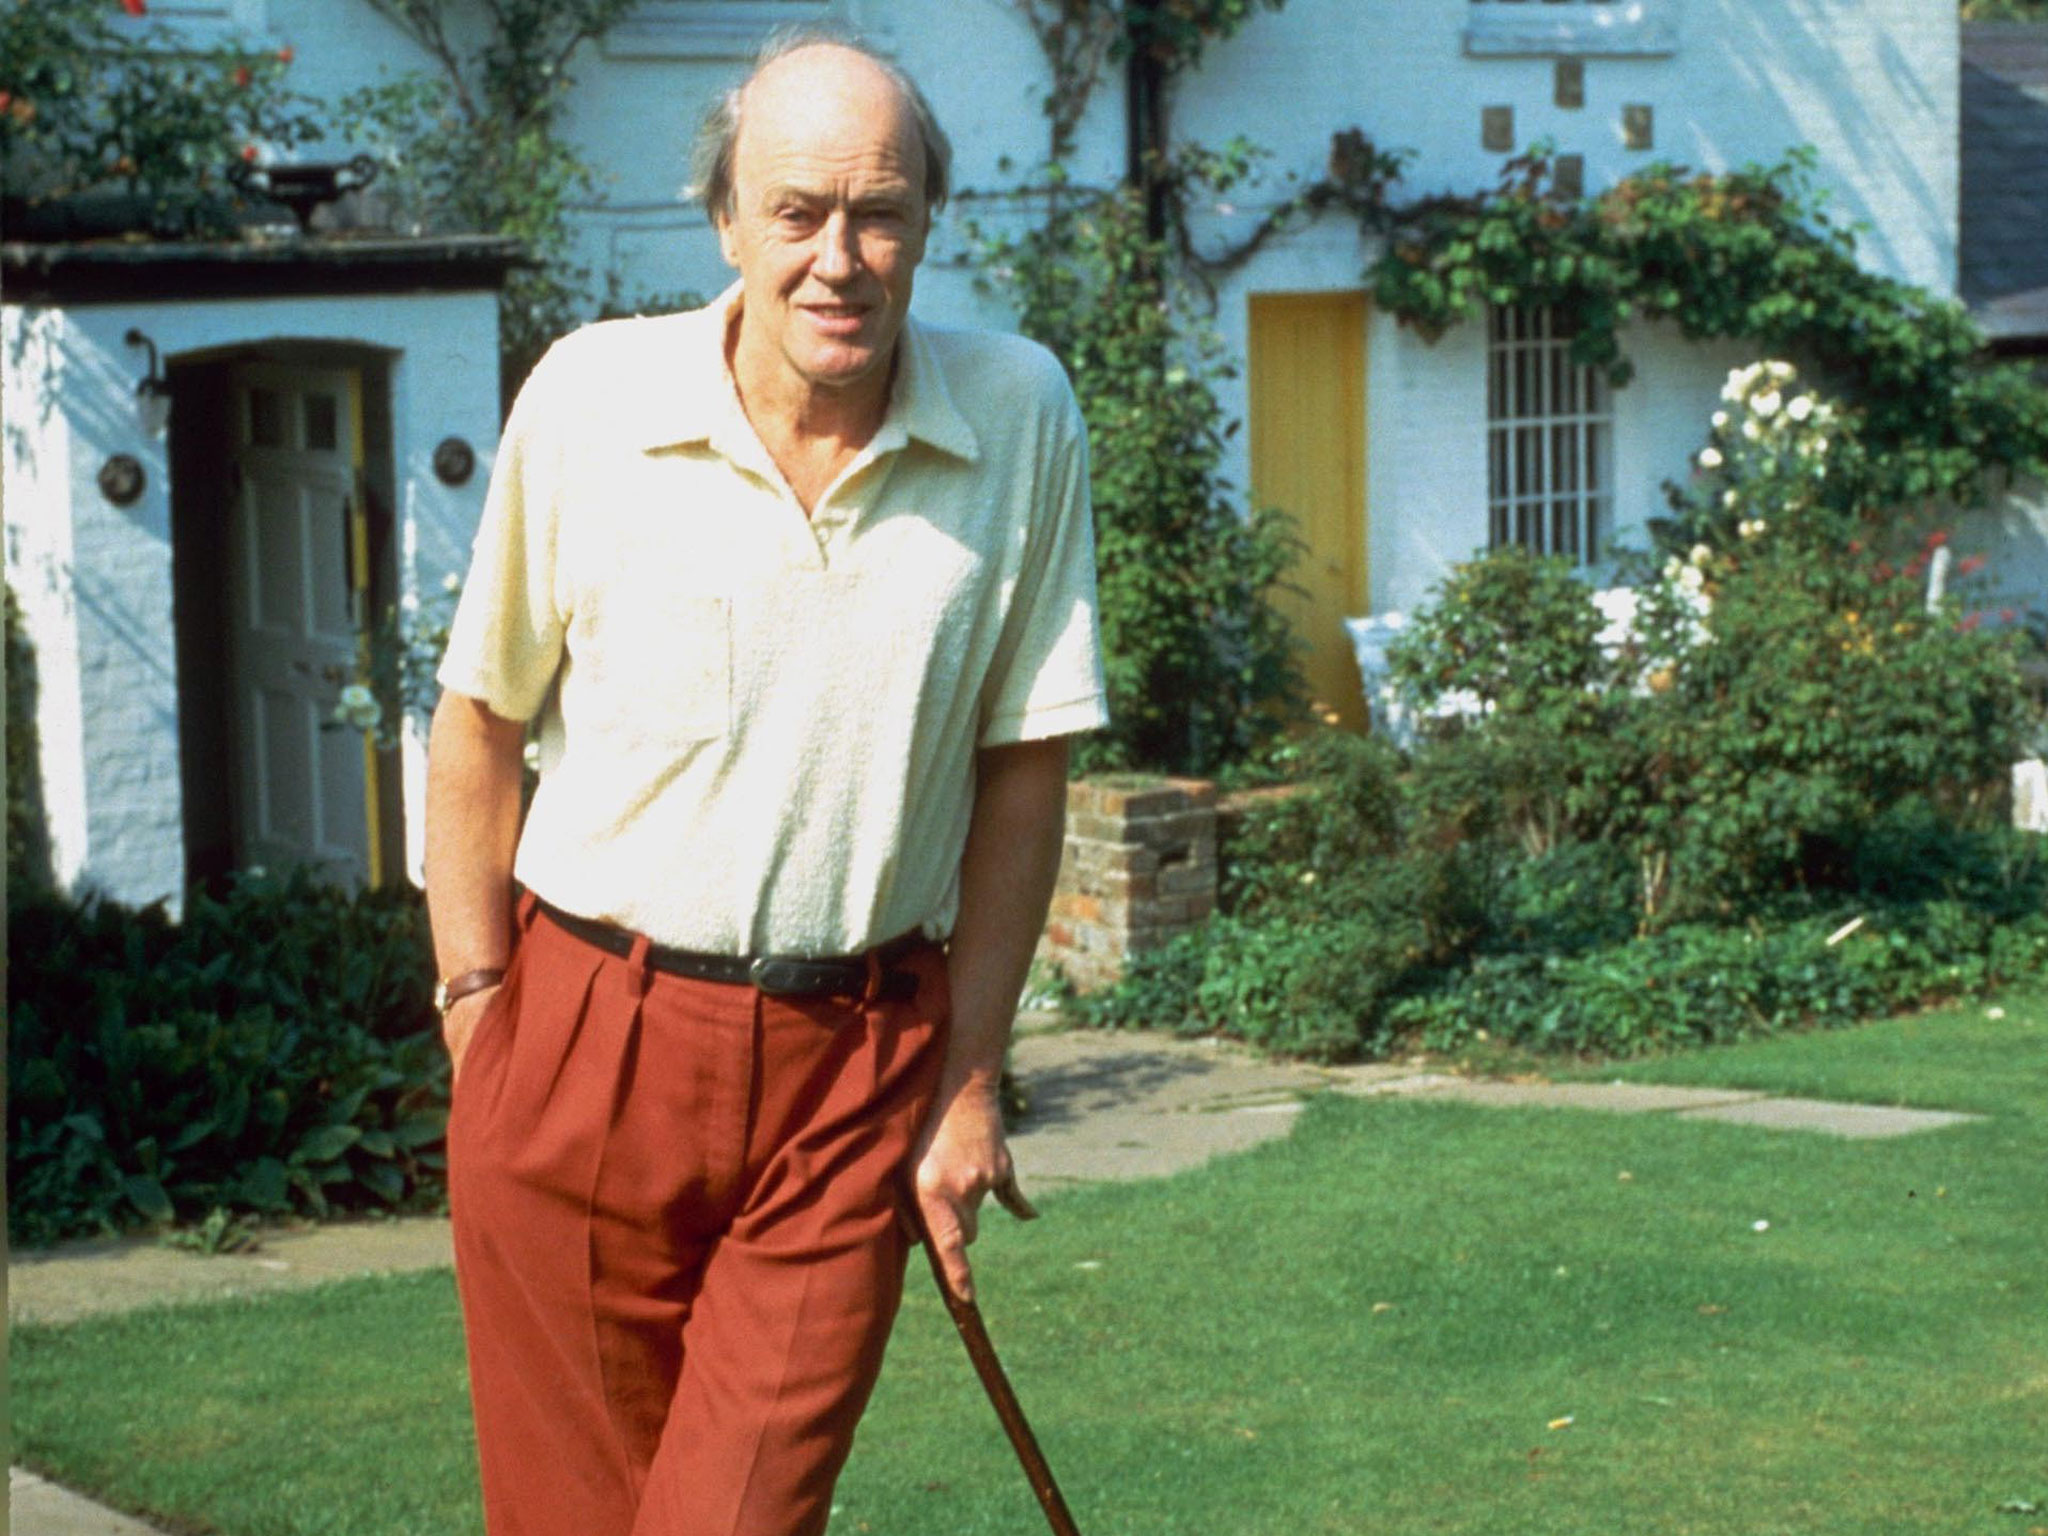 The tale of the unexpected decline of Roald Dahl - News - Books - The Independent